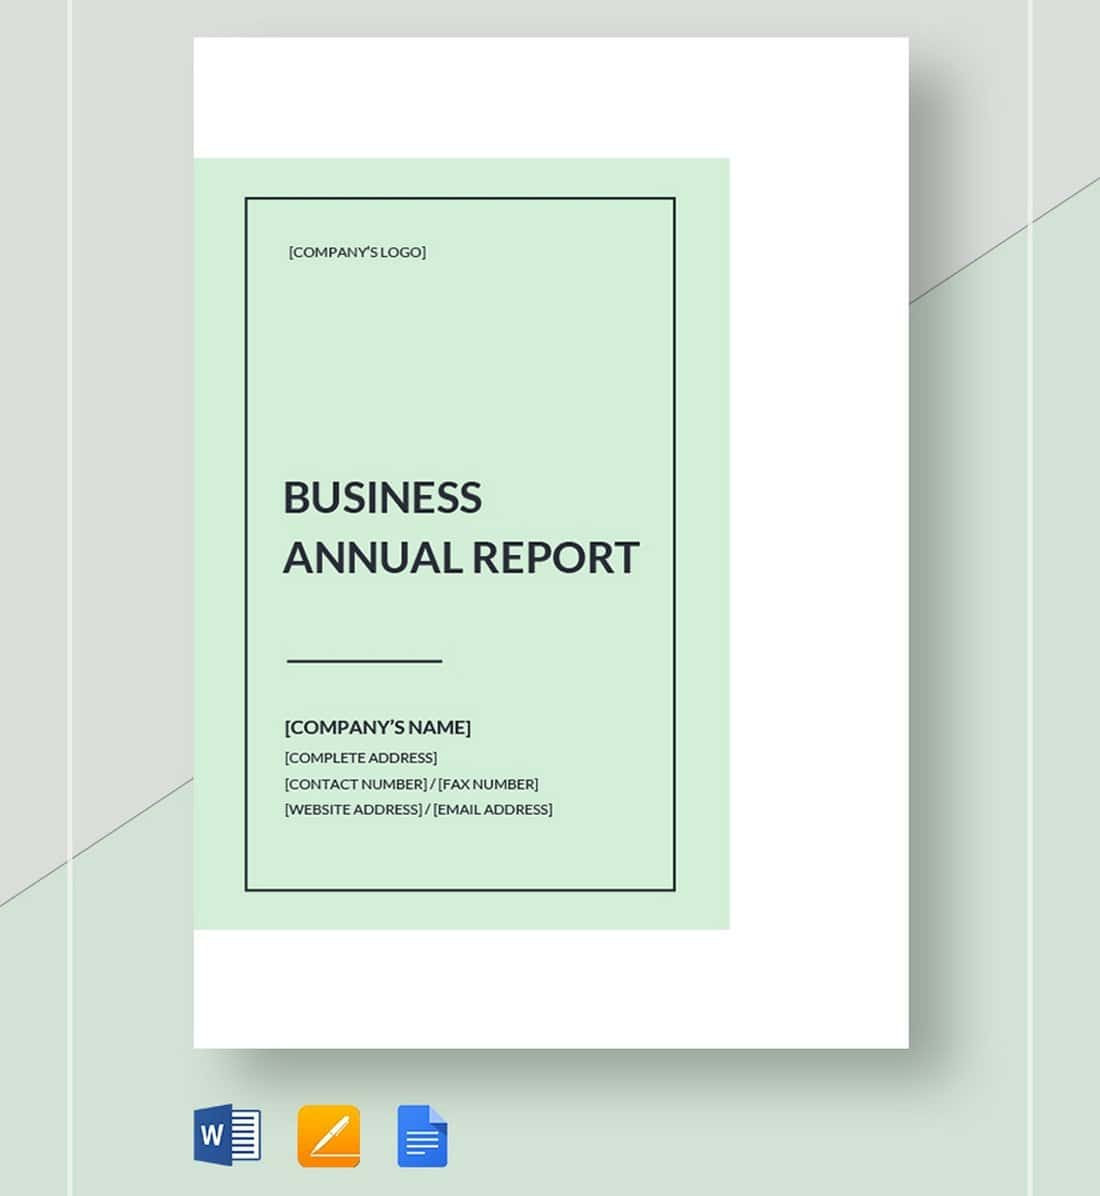 Free-Minimal-Business-Annual-Report-Template 50+ Annual Report Templates (Word & InDesign) 2021 design tips